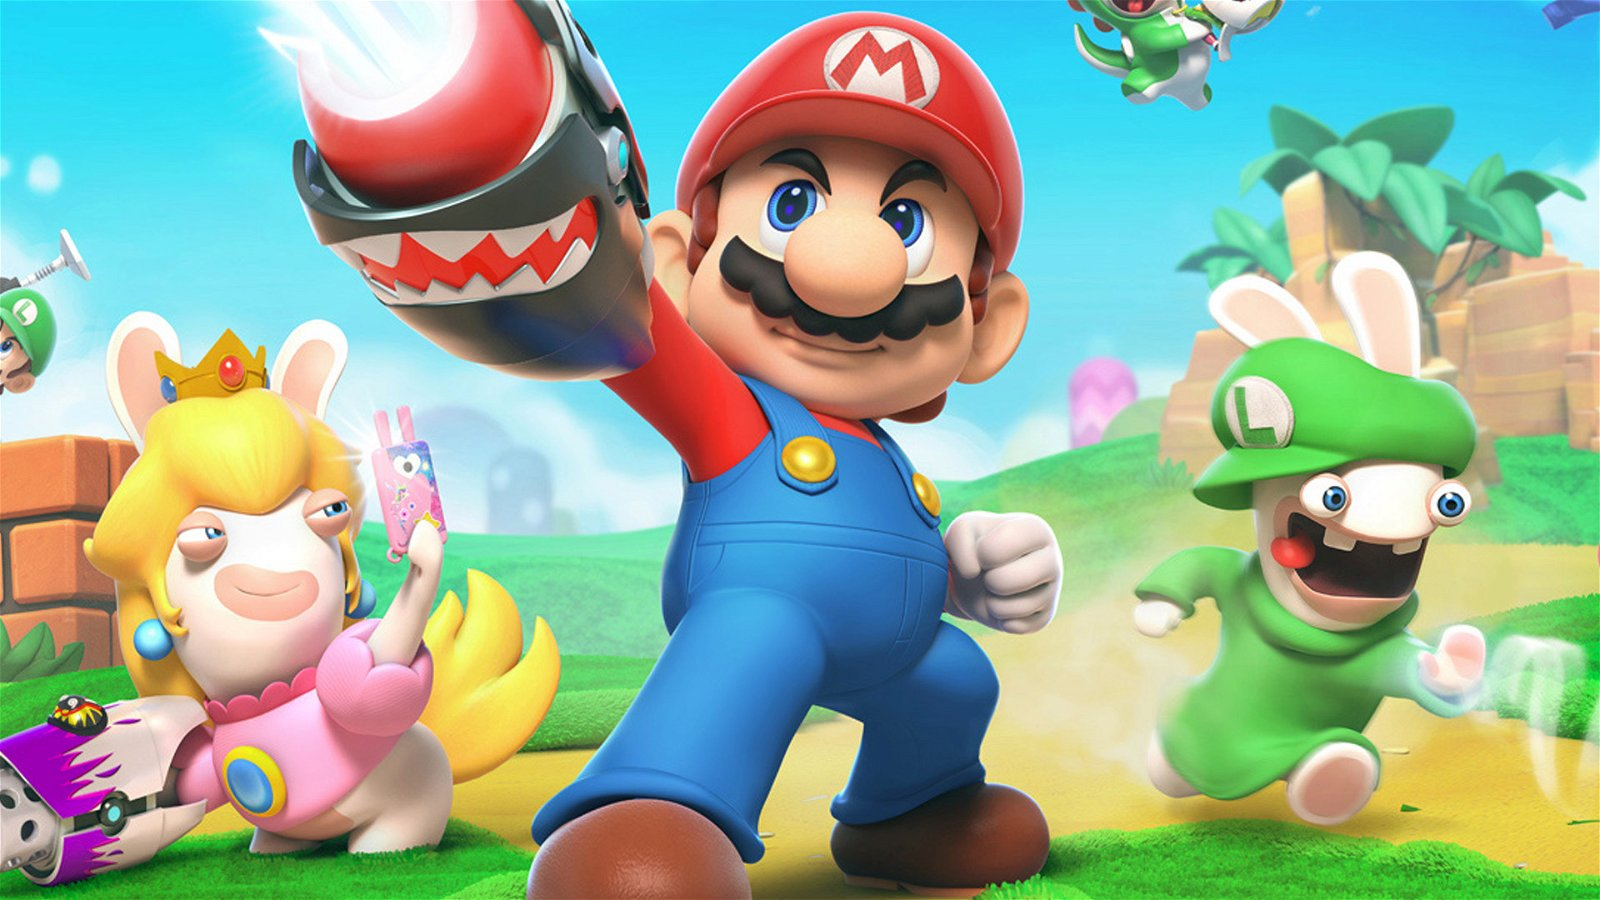 Mario + Rabbids: Kingdom Battle (Switch) Review: Engrossing Tactics & Gross-Out Humor 1